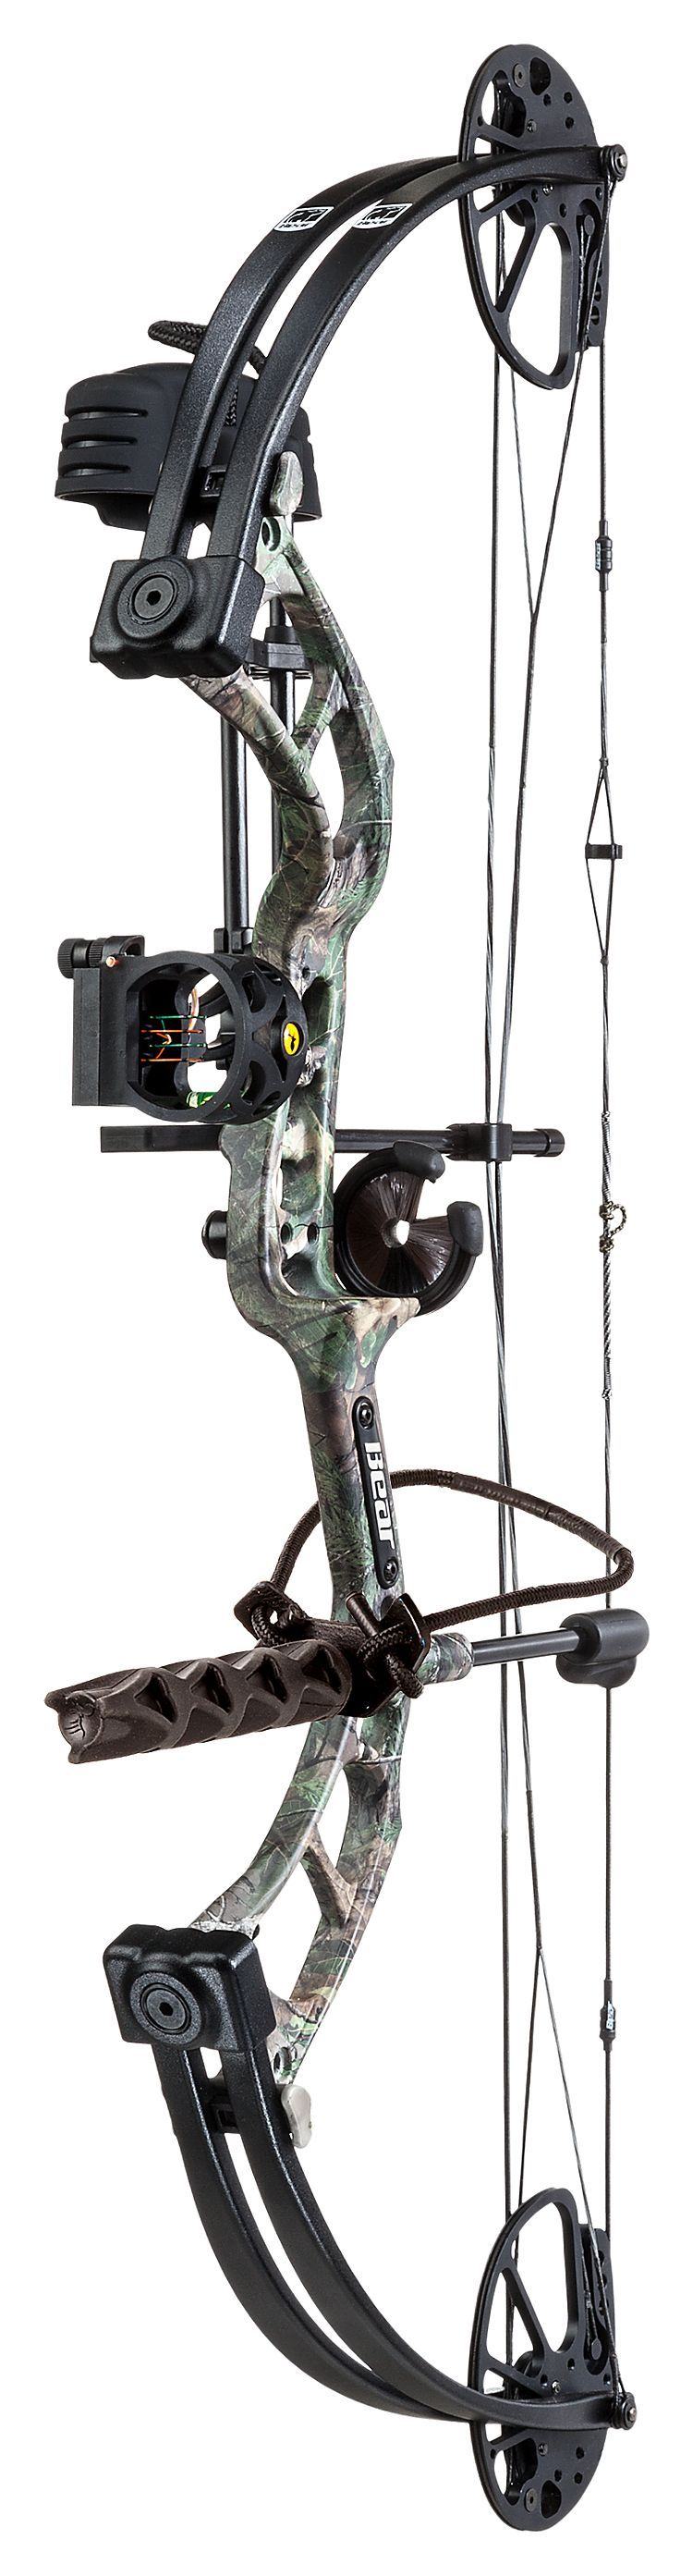 Bear archery cruzer rth ready to hunt compound bow for Compound bow fishing